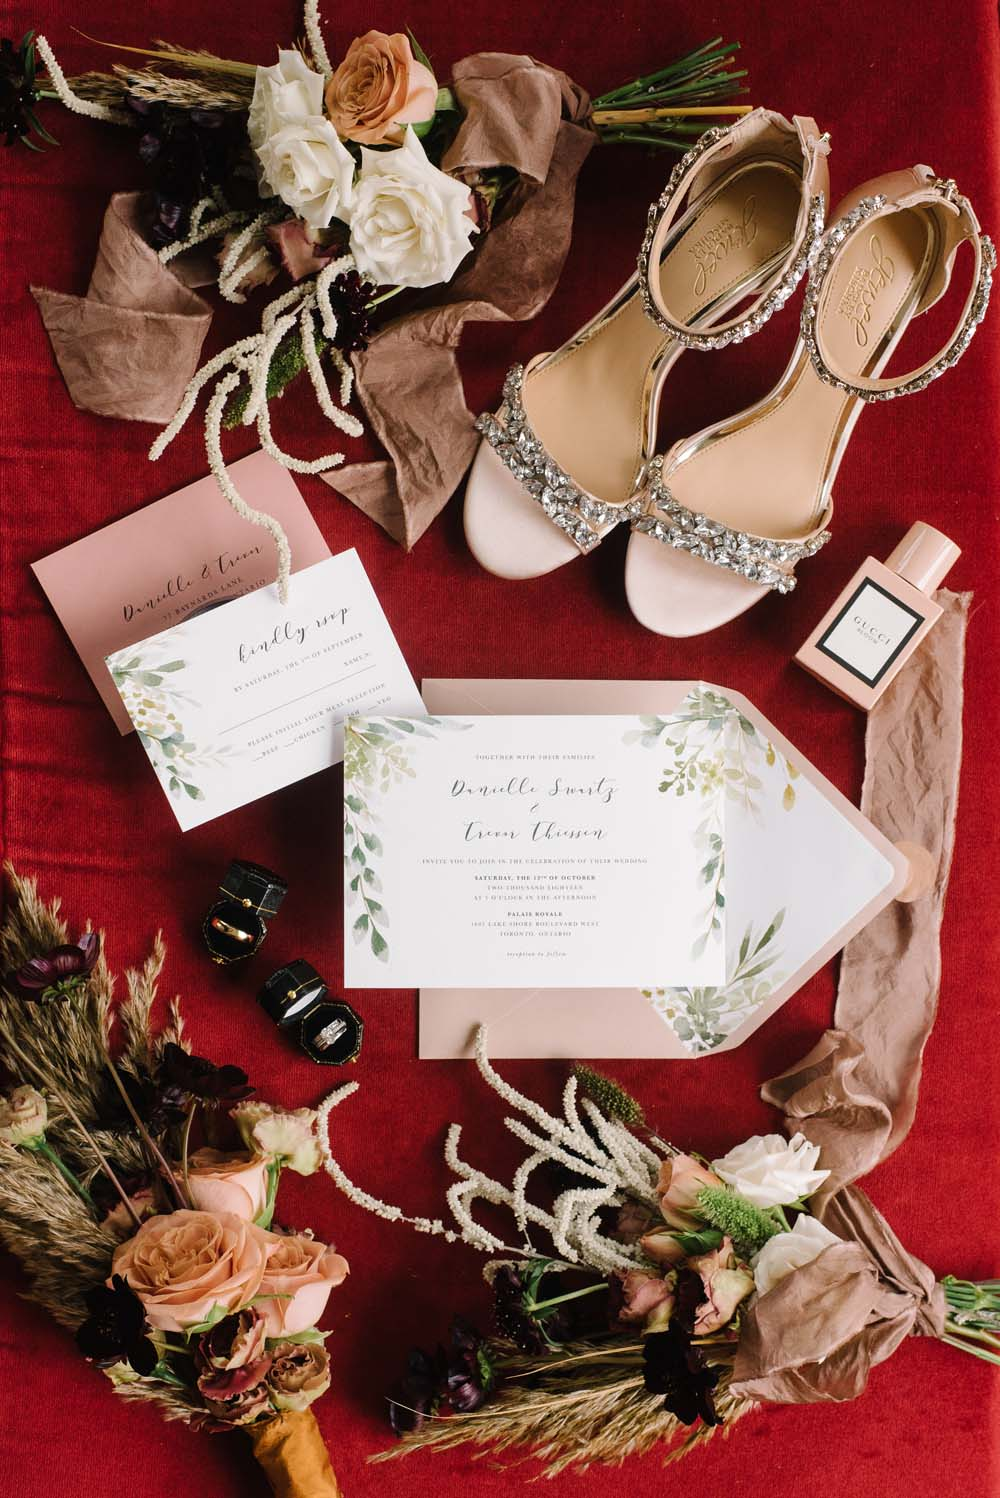 A Rustic Lakeside Wedding in Toronto, Ontario - Florals, Stationery and Accessories